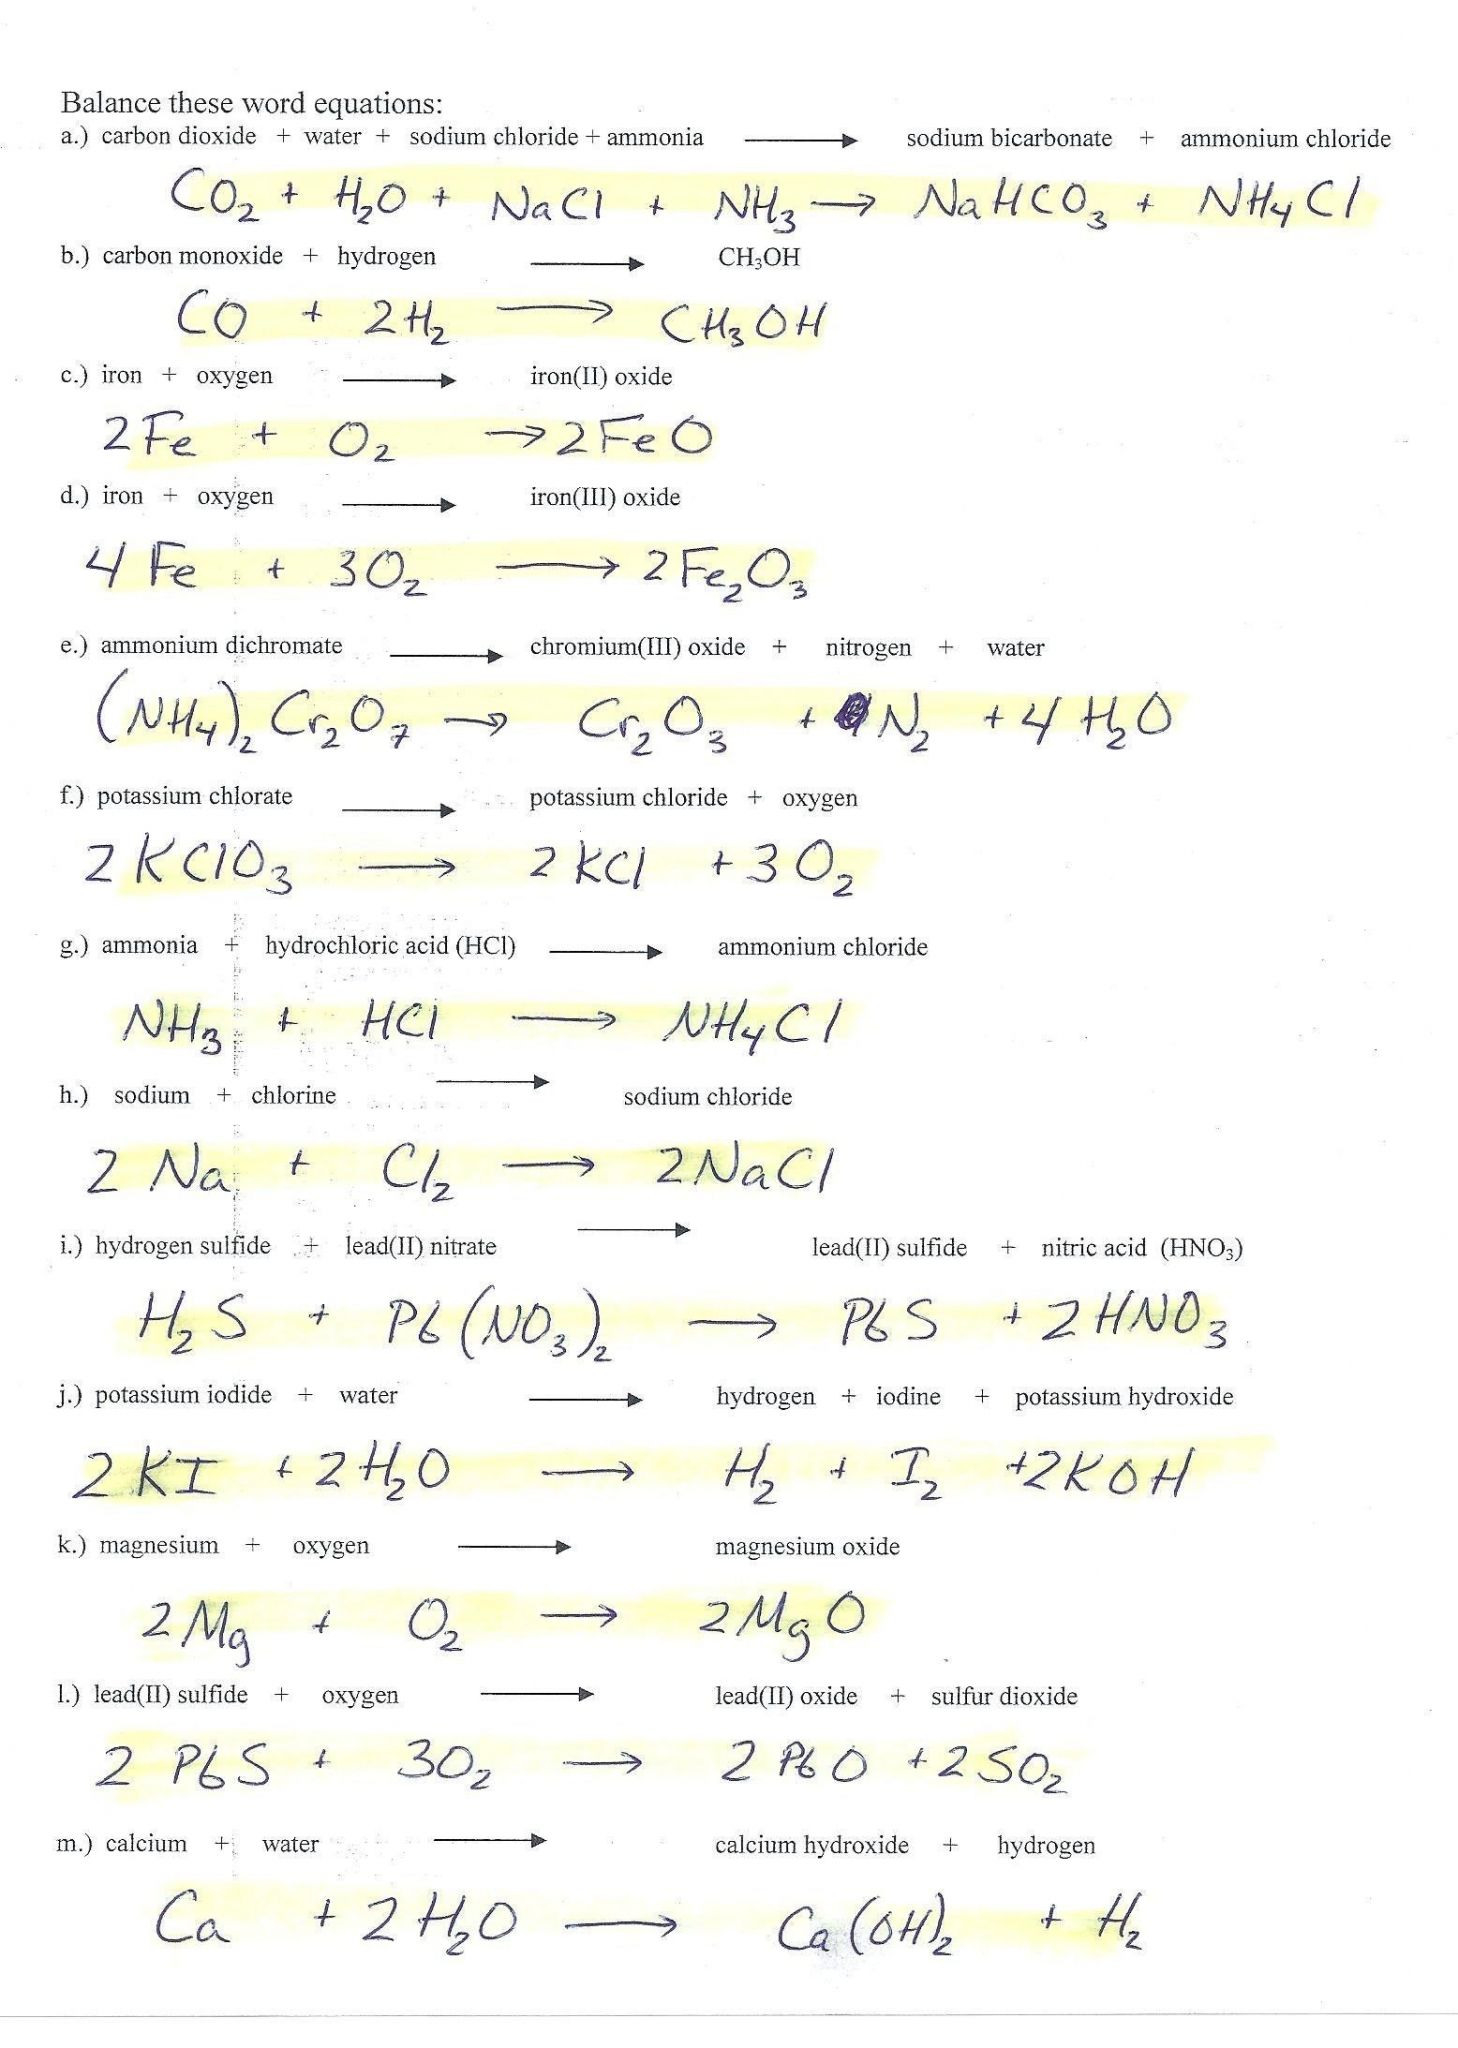 Physical Science If8767 Worksheet Answers — db excel.com